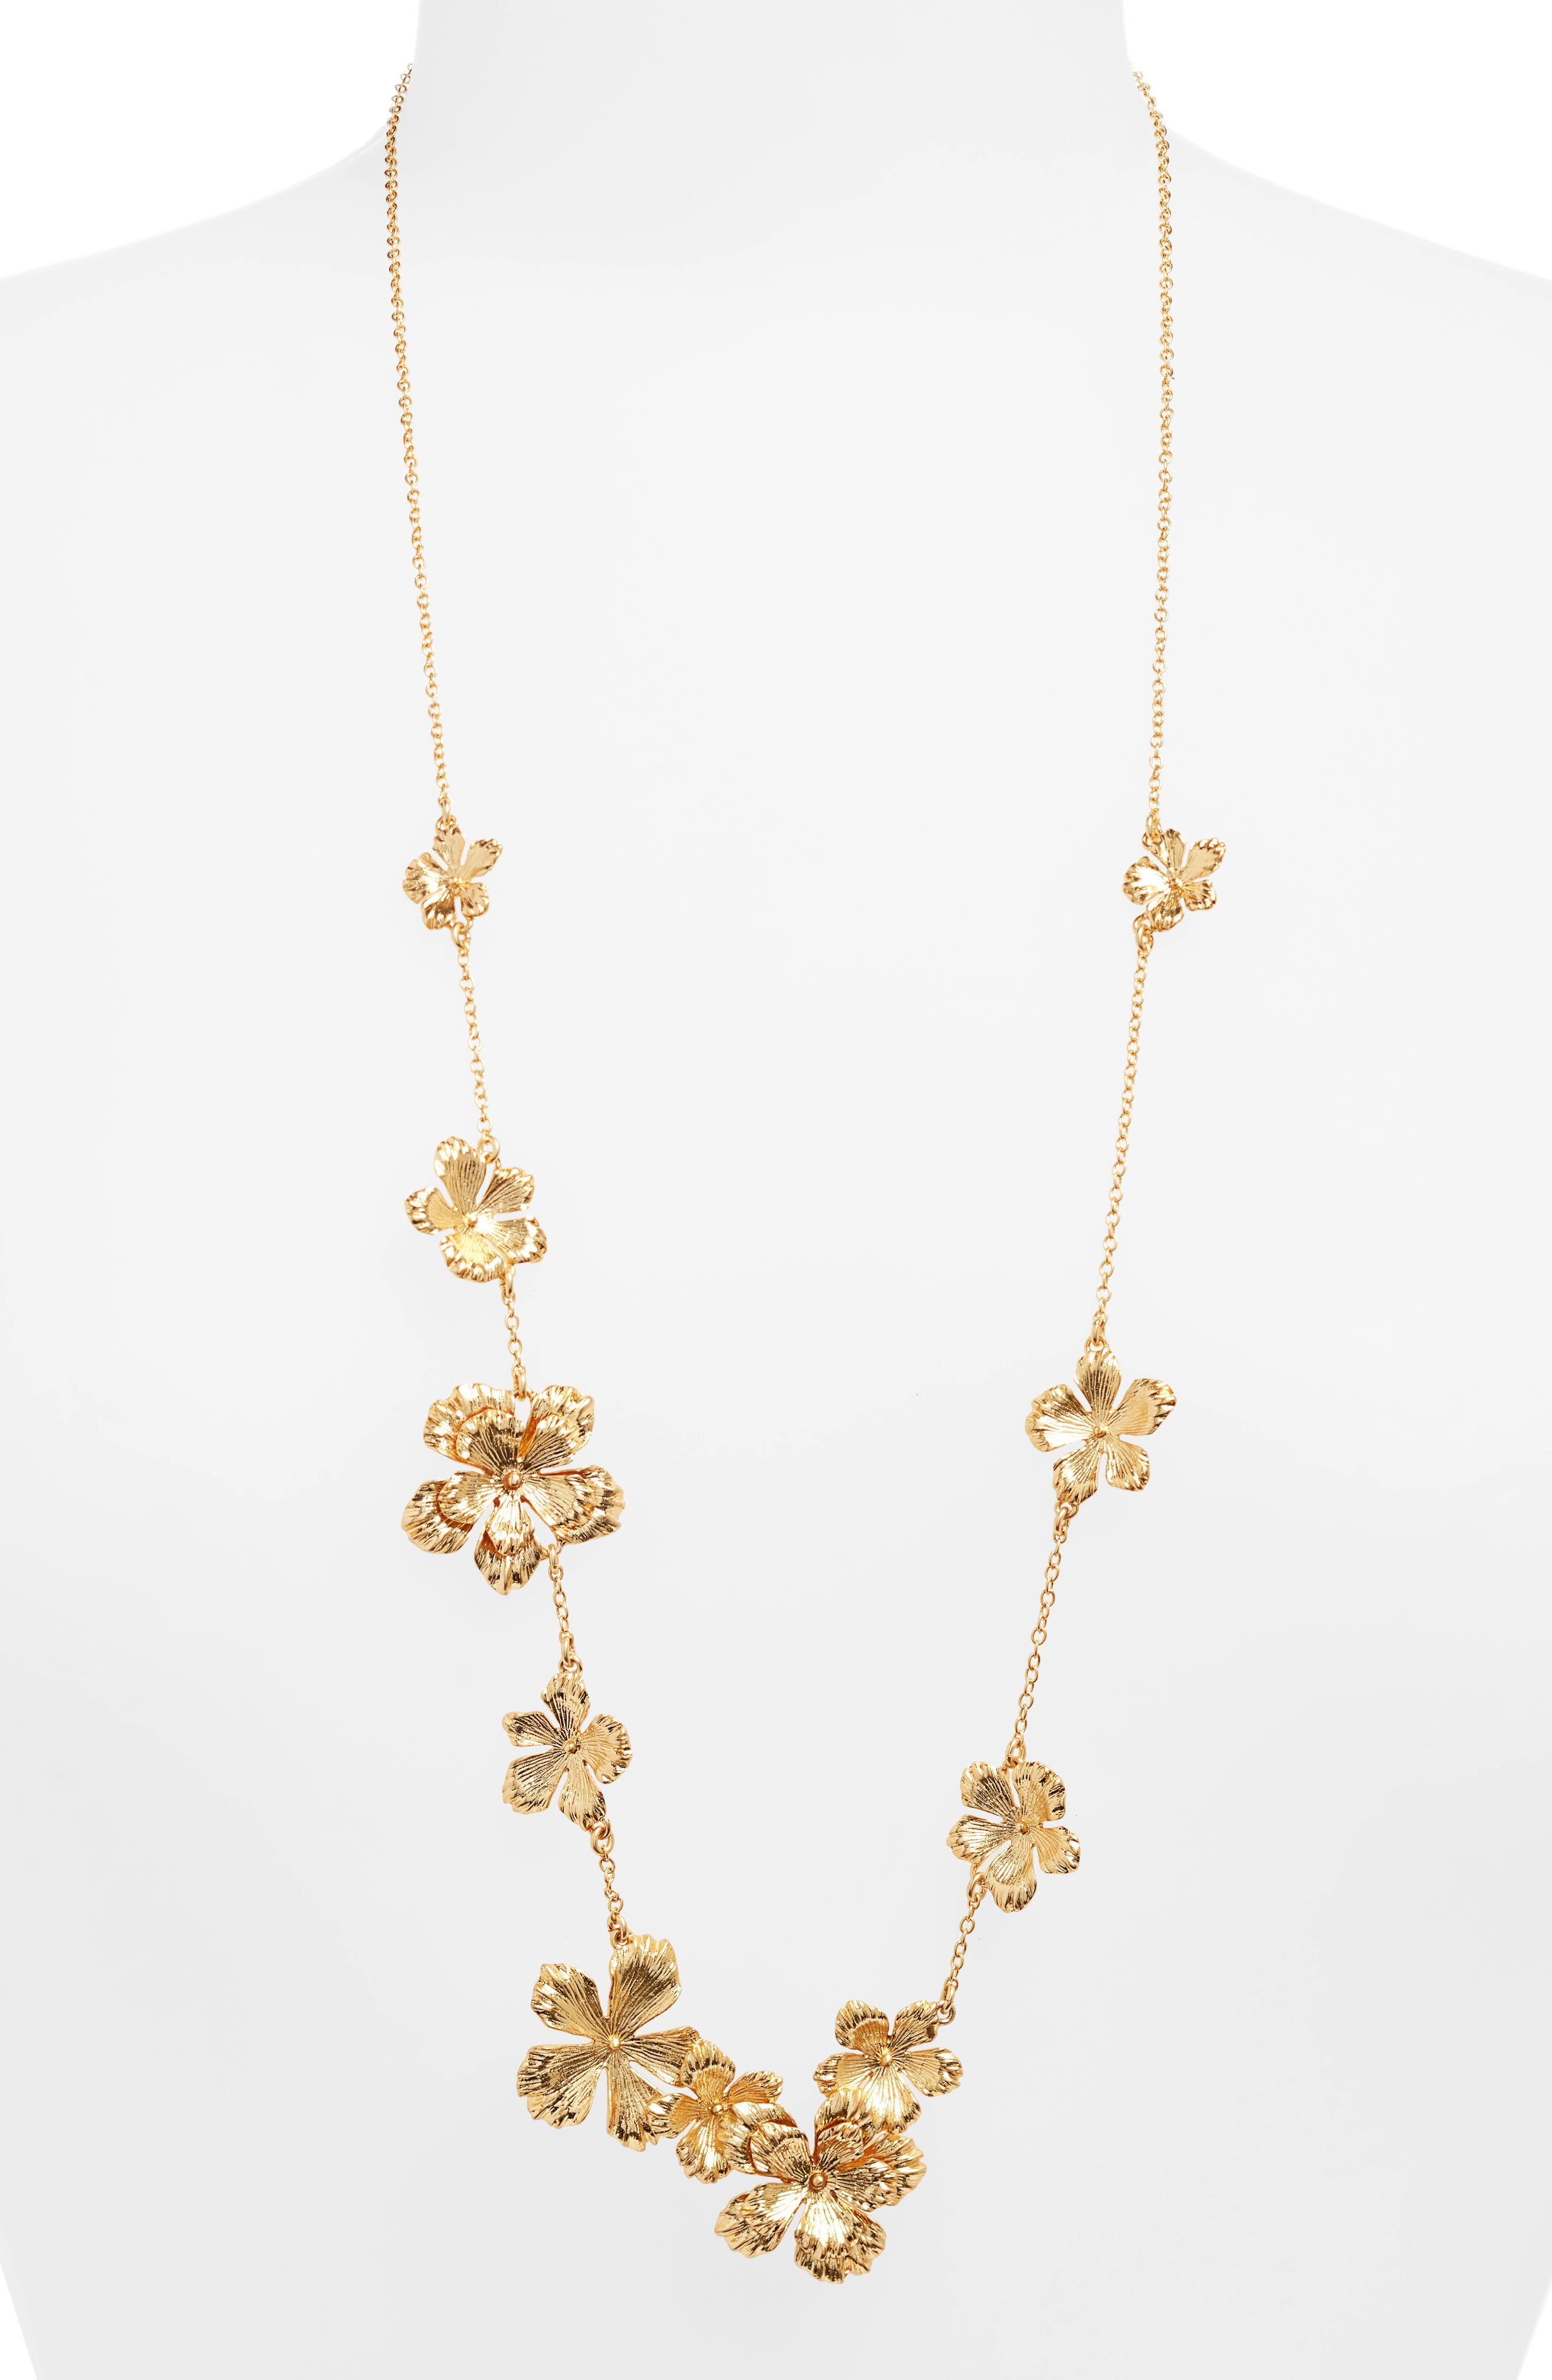 J.CREW PANSY GARLAND NECKLACE